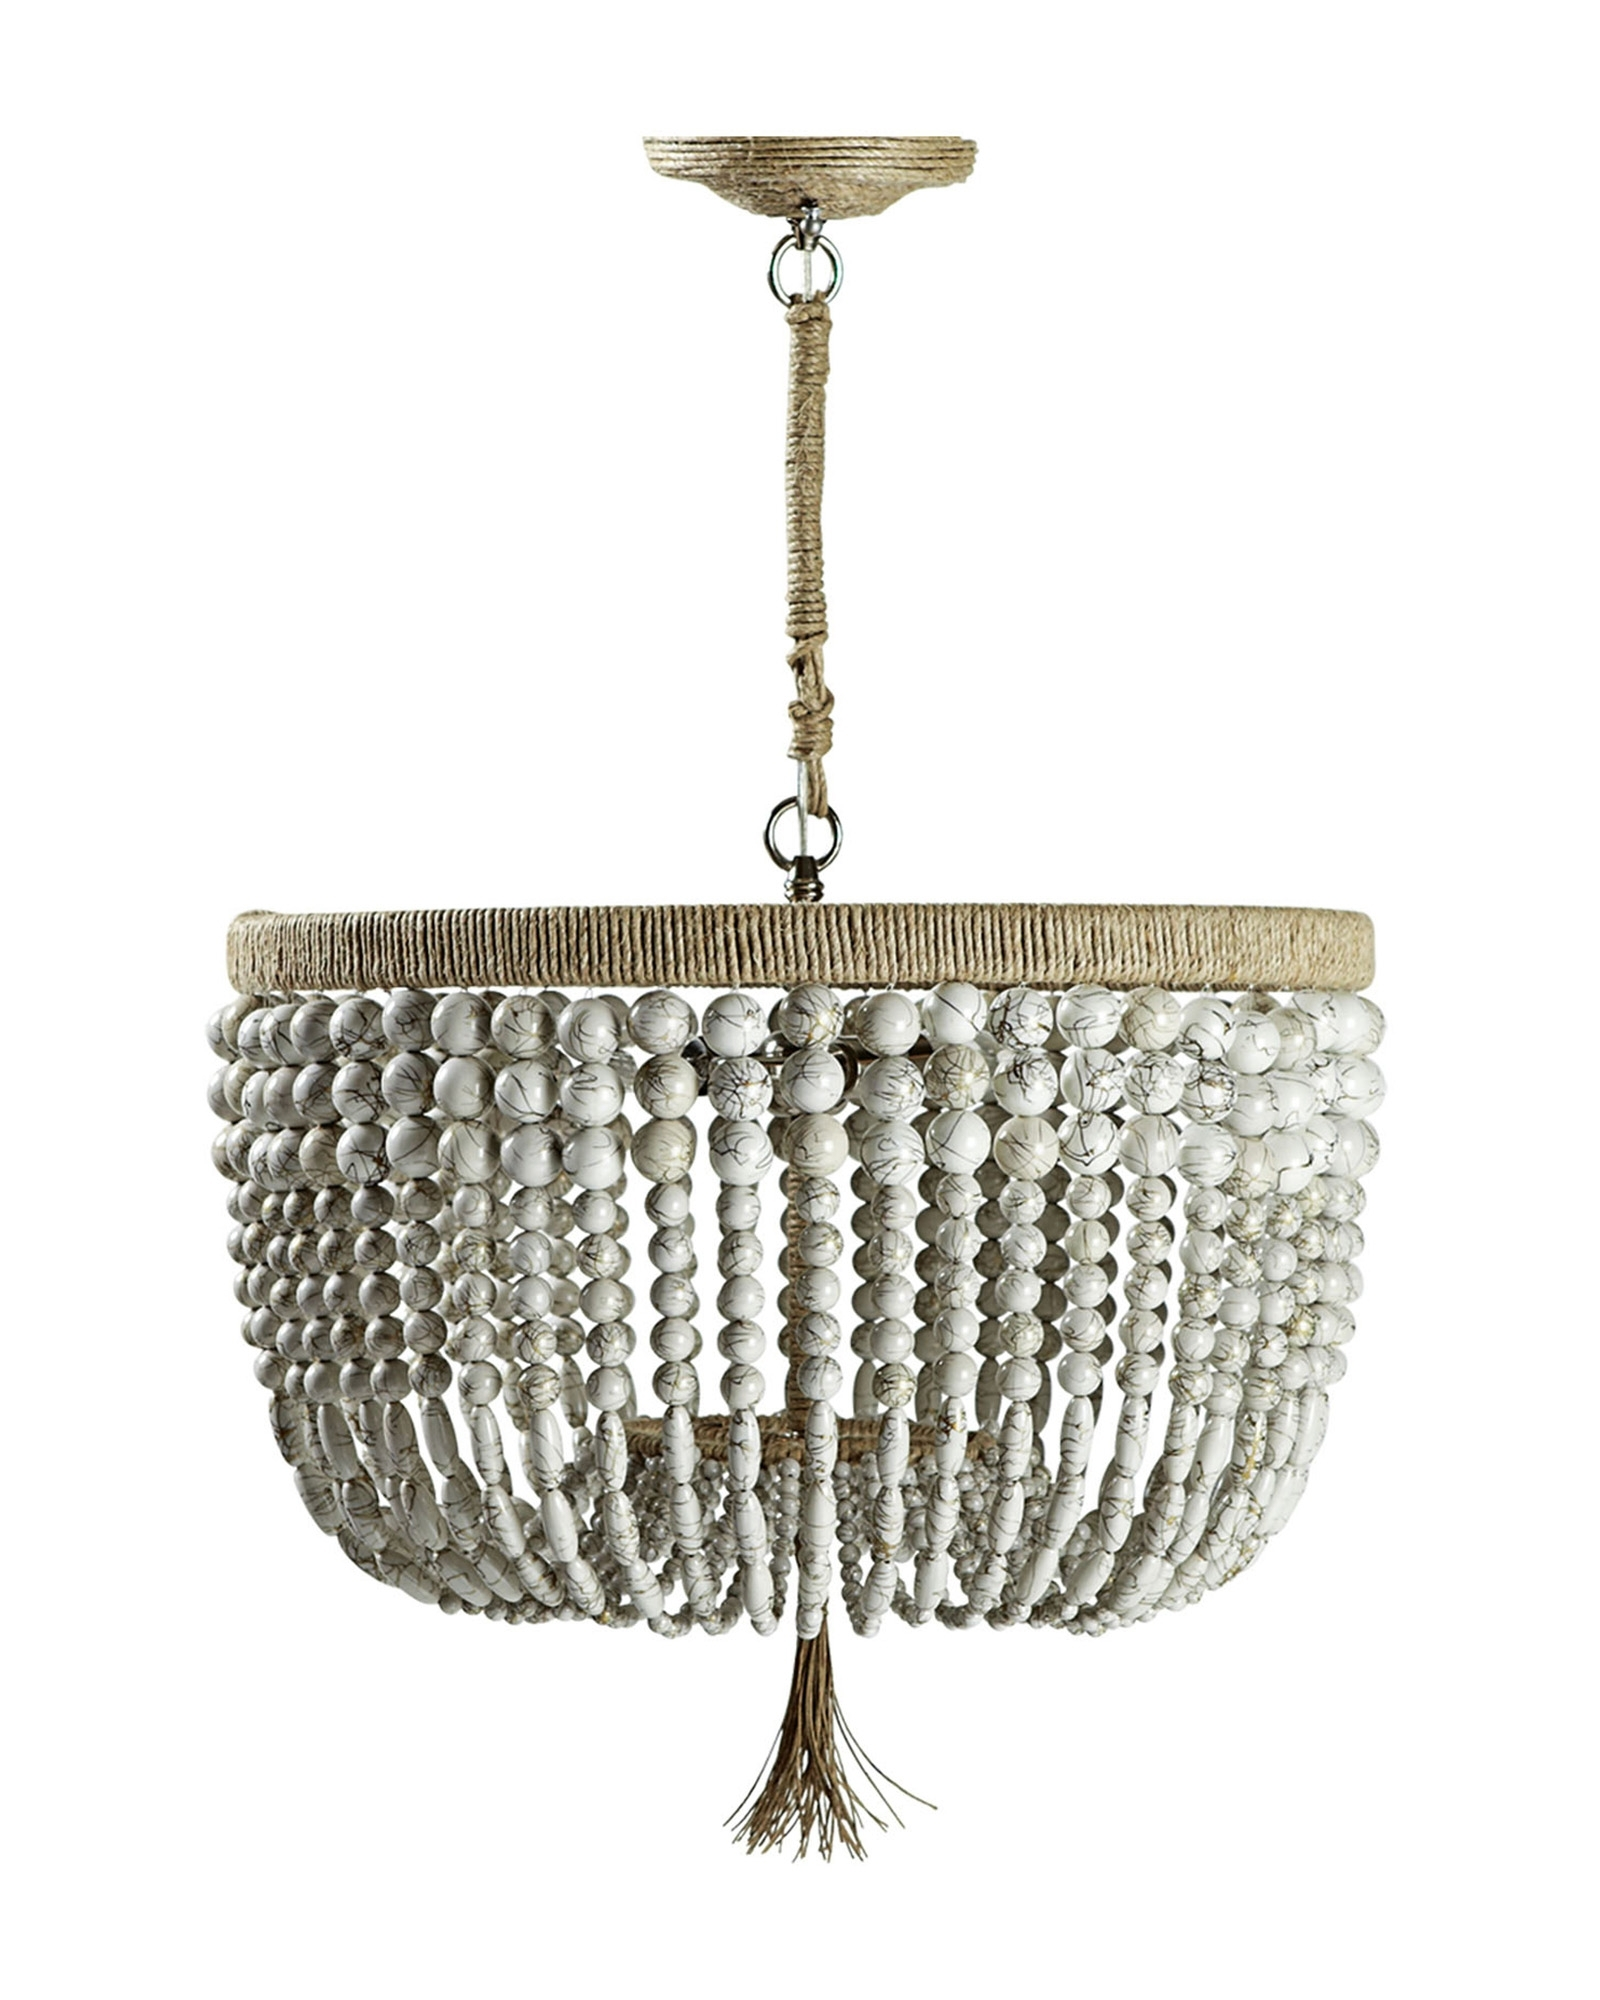 Most Current Malibu Chandelier – Serena & Lily Within Lily Chandeliers (View 13 of 20)